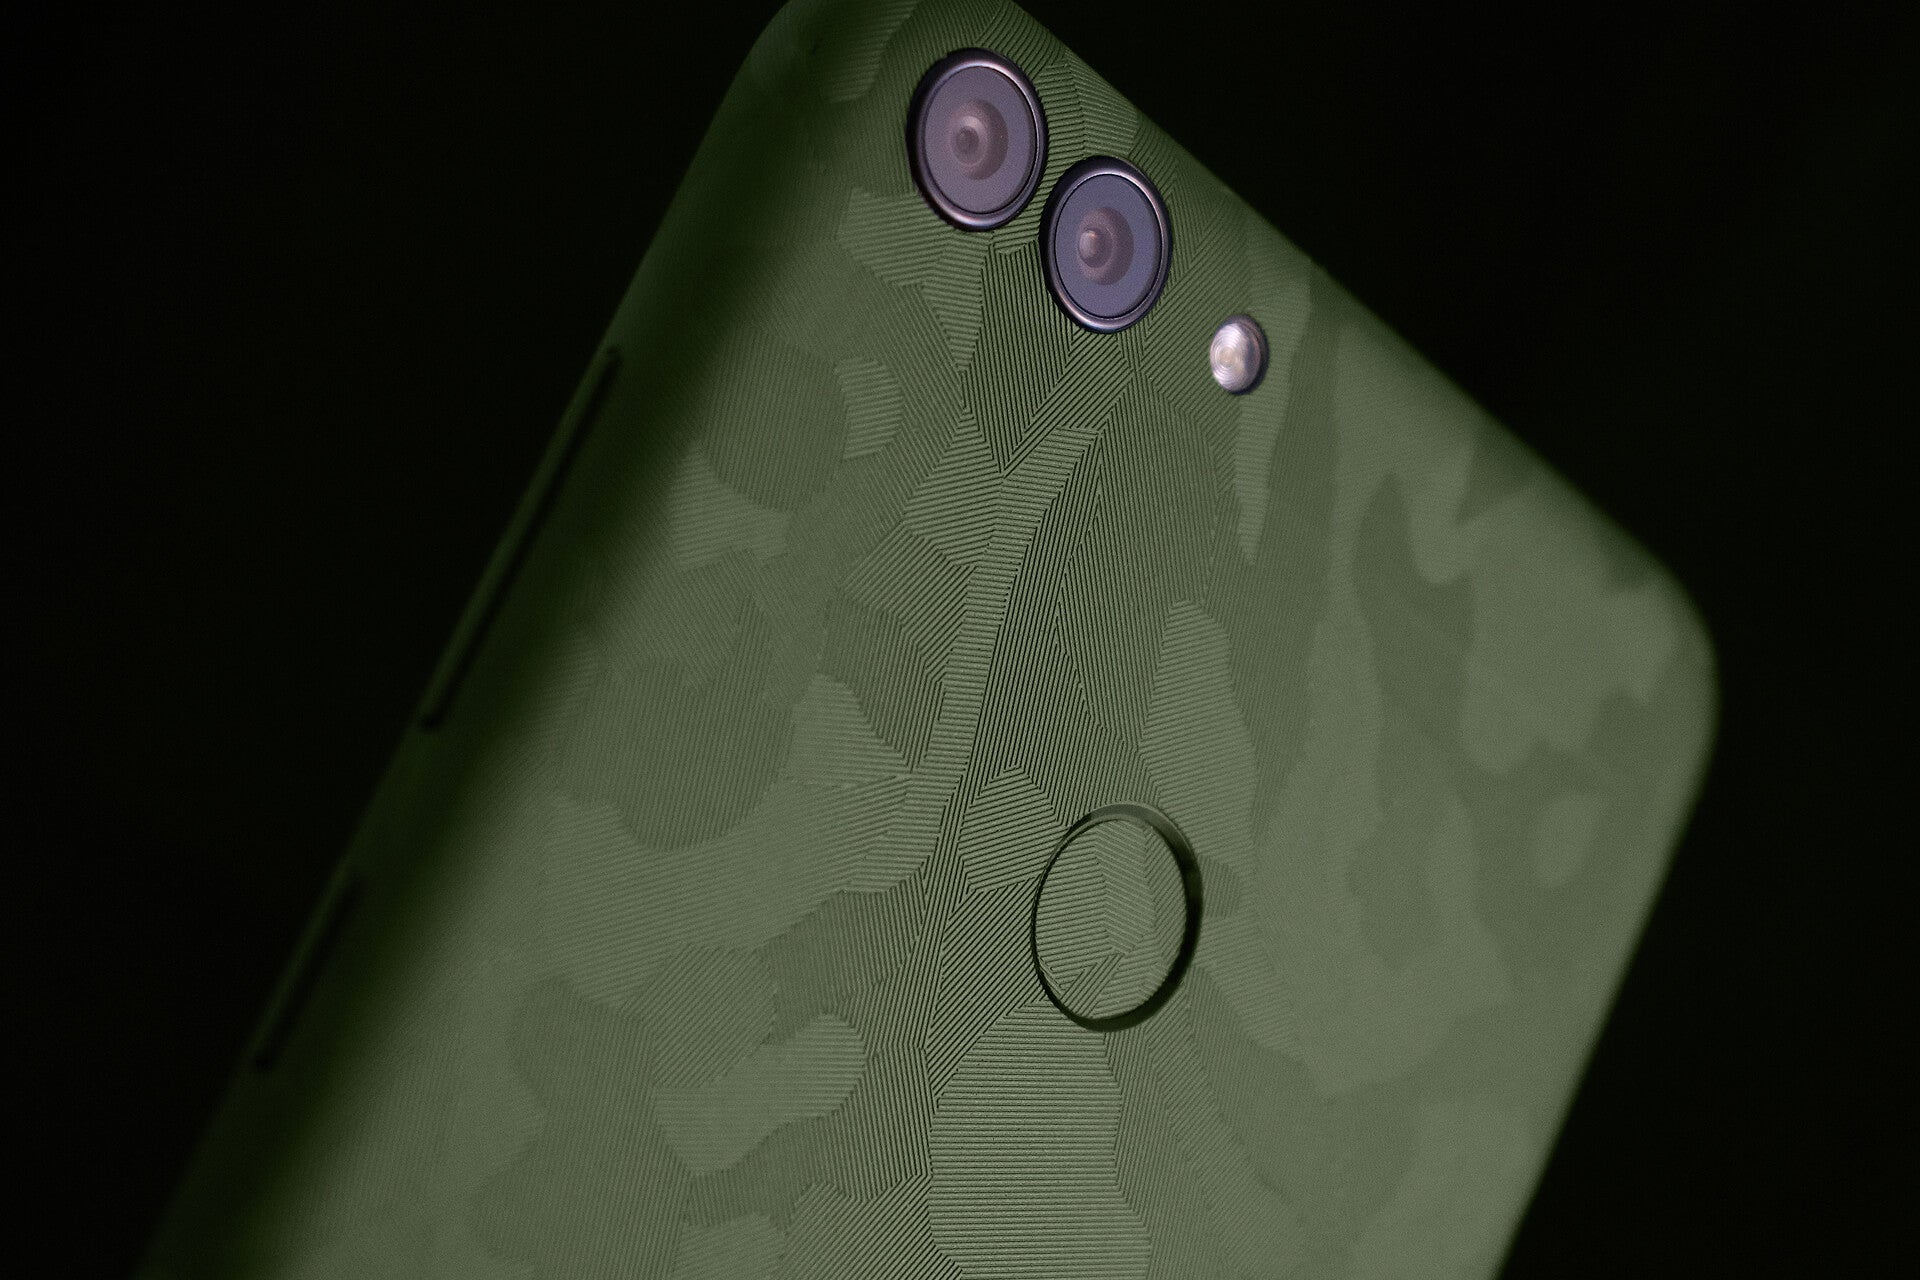 Huawei P Smart Green Camo Skins